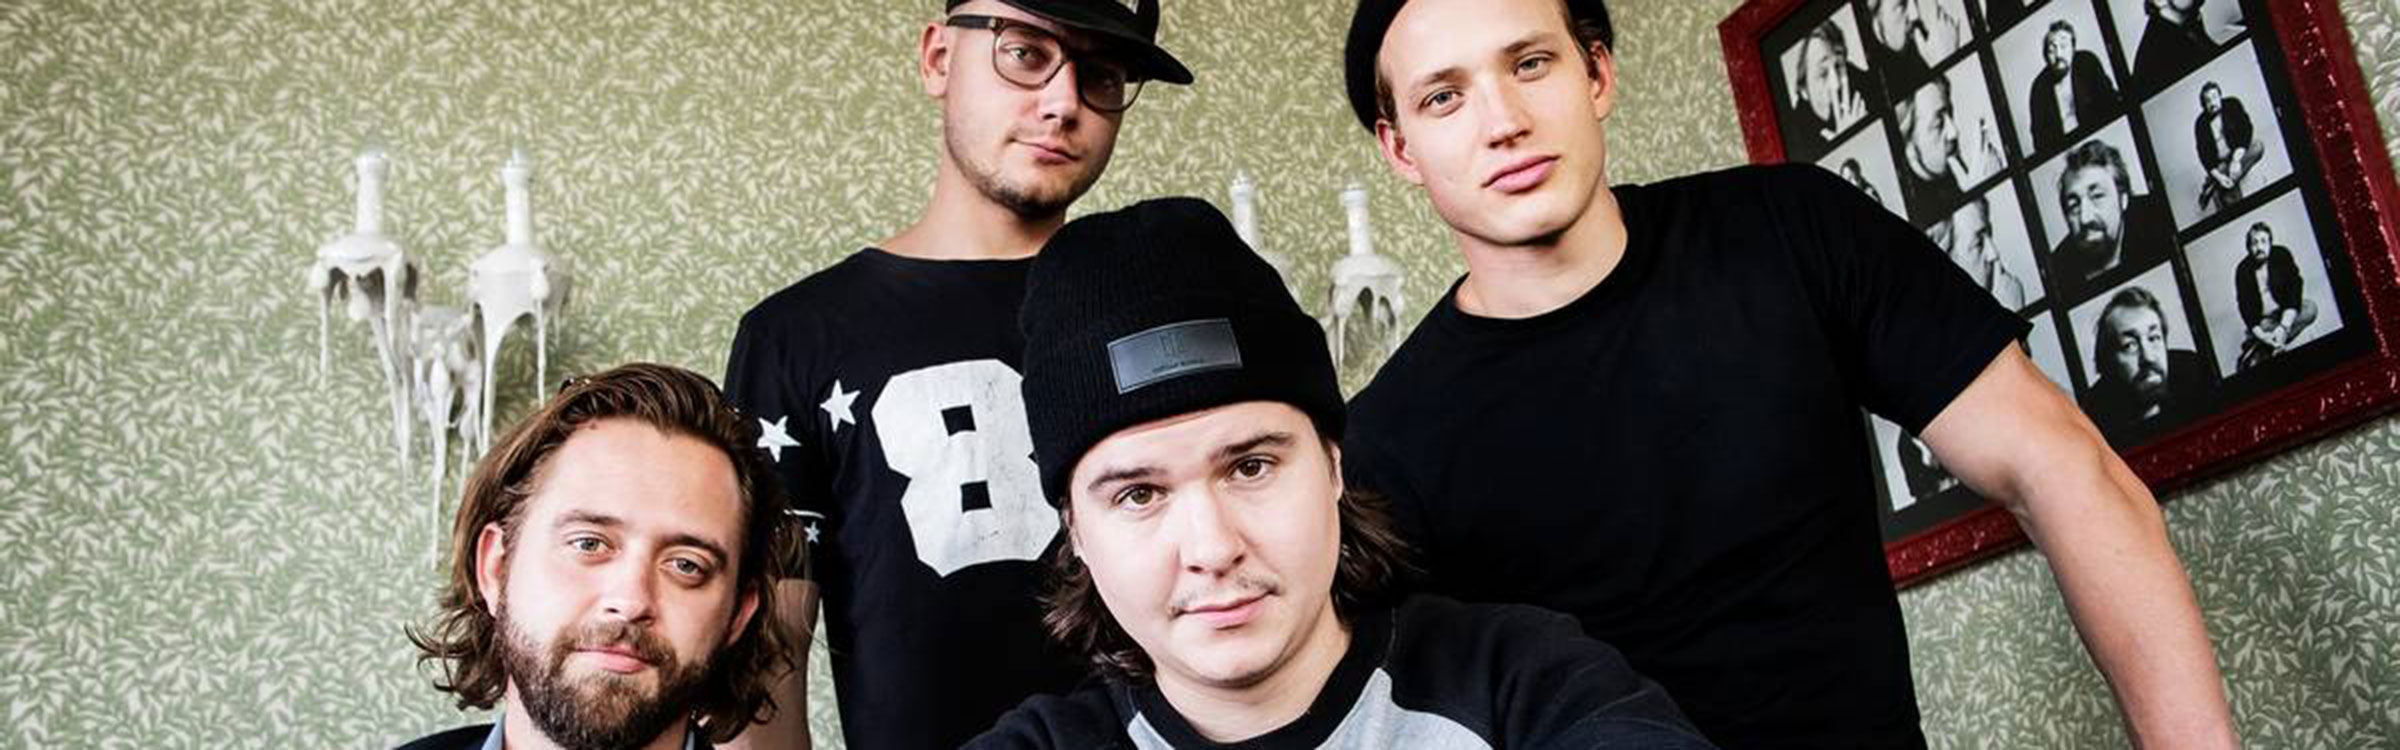 Lukas graham recovered